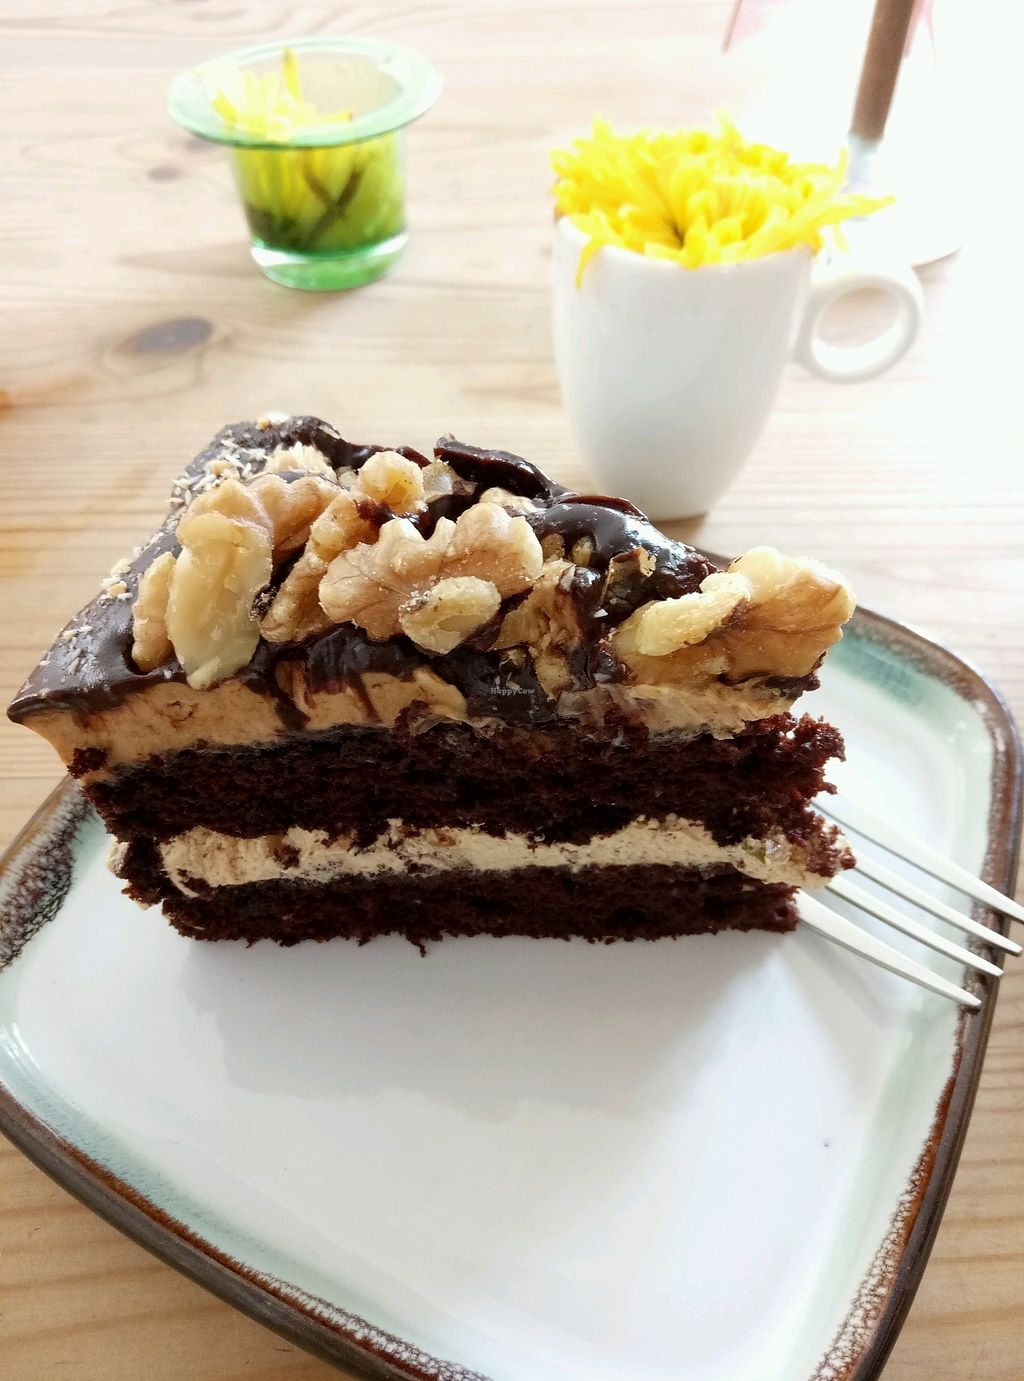 "Photo of RGB and The Bean Hive  by <a href=""/members/profile/SamanthaBurns"">SamanthaBurns</a> <br/>AWESOME vegan cake! <br/> February 10, 2018  - <a href='/contact/abuse/image/47954/357262'>Report</a>"